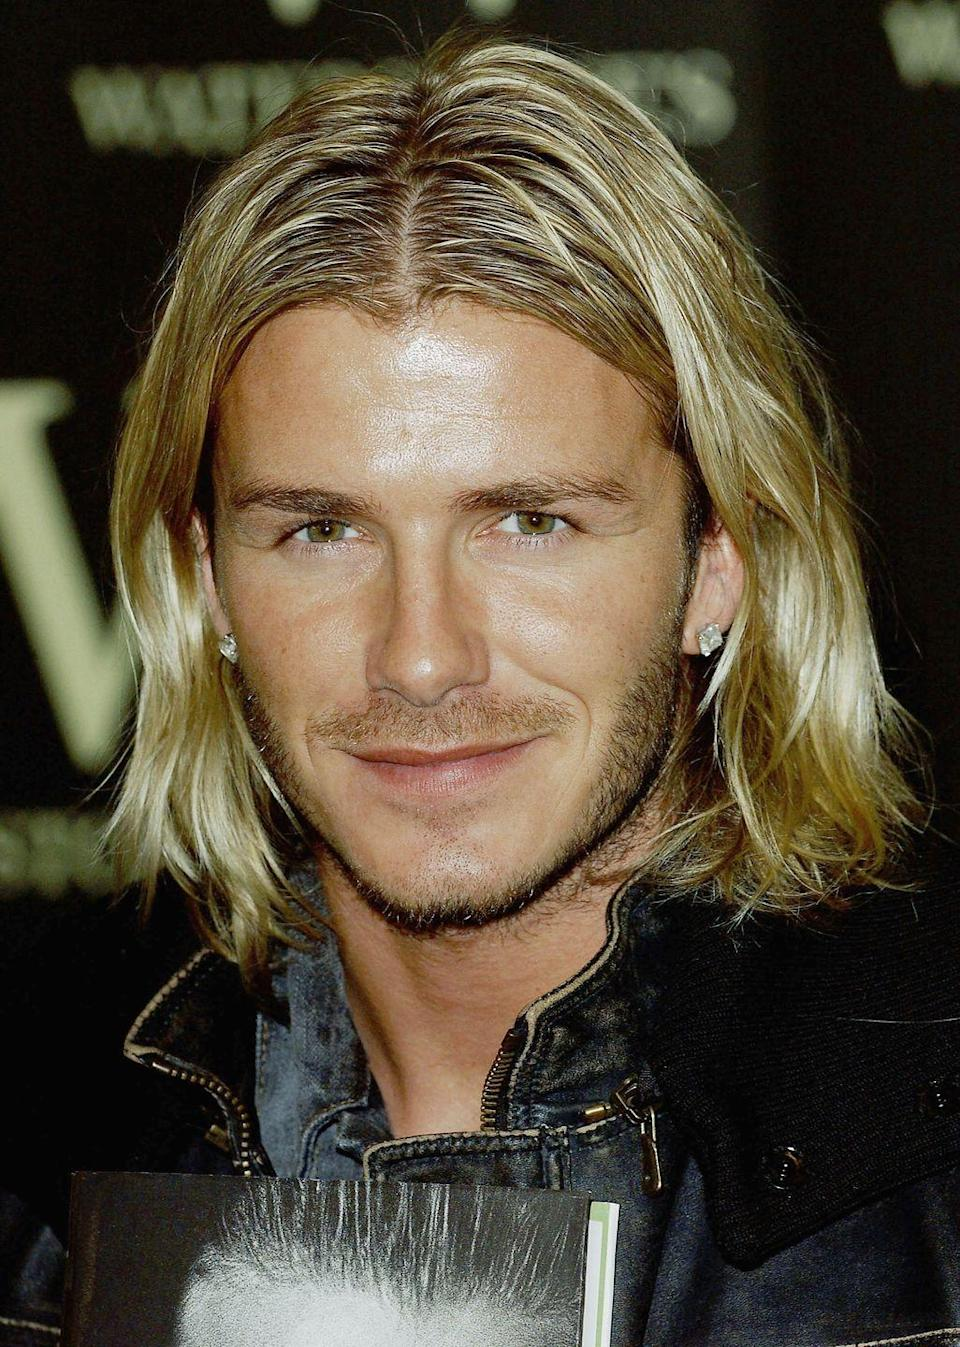 <p>Throughout the years, David Beckham has become almost as famous for his varying hairstyles as for his soccer skills. In 2003, the British football star grew his blonde hair to his shoulders.</p>